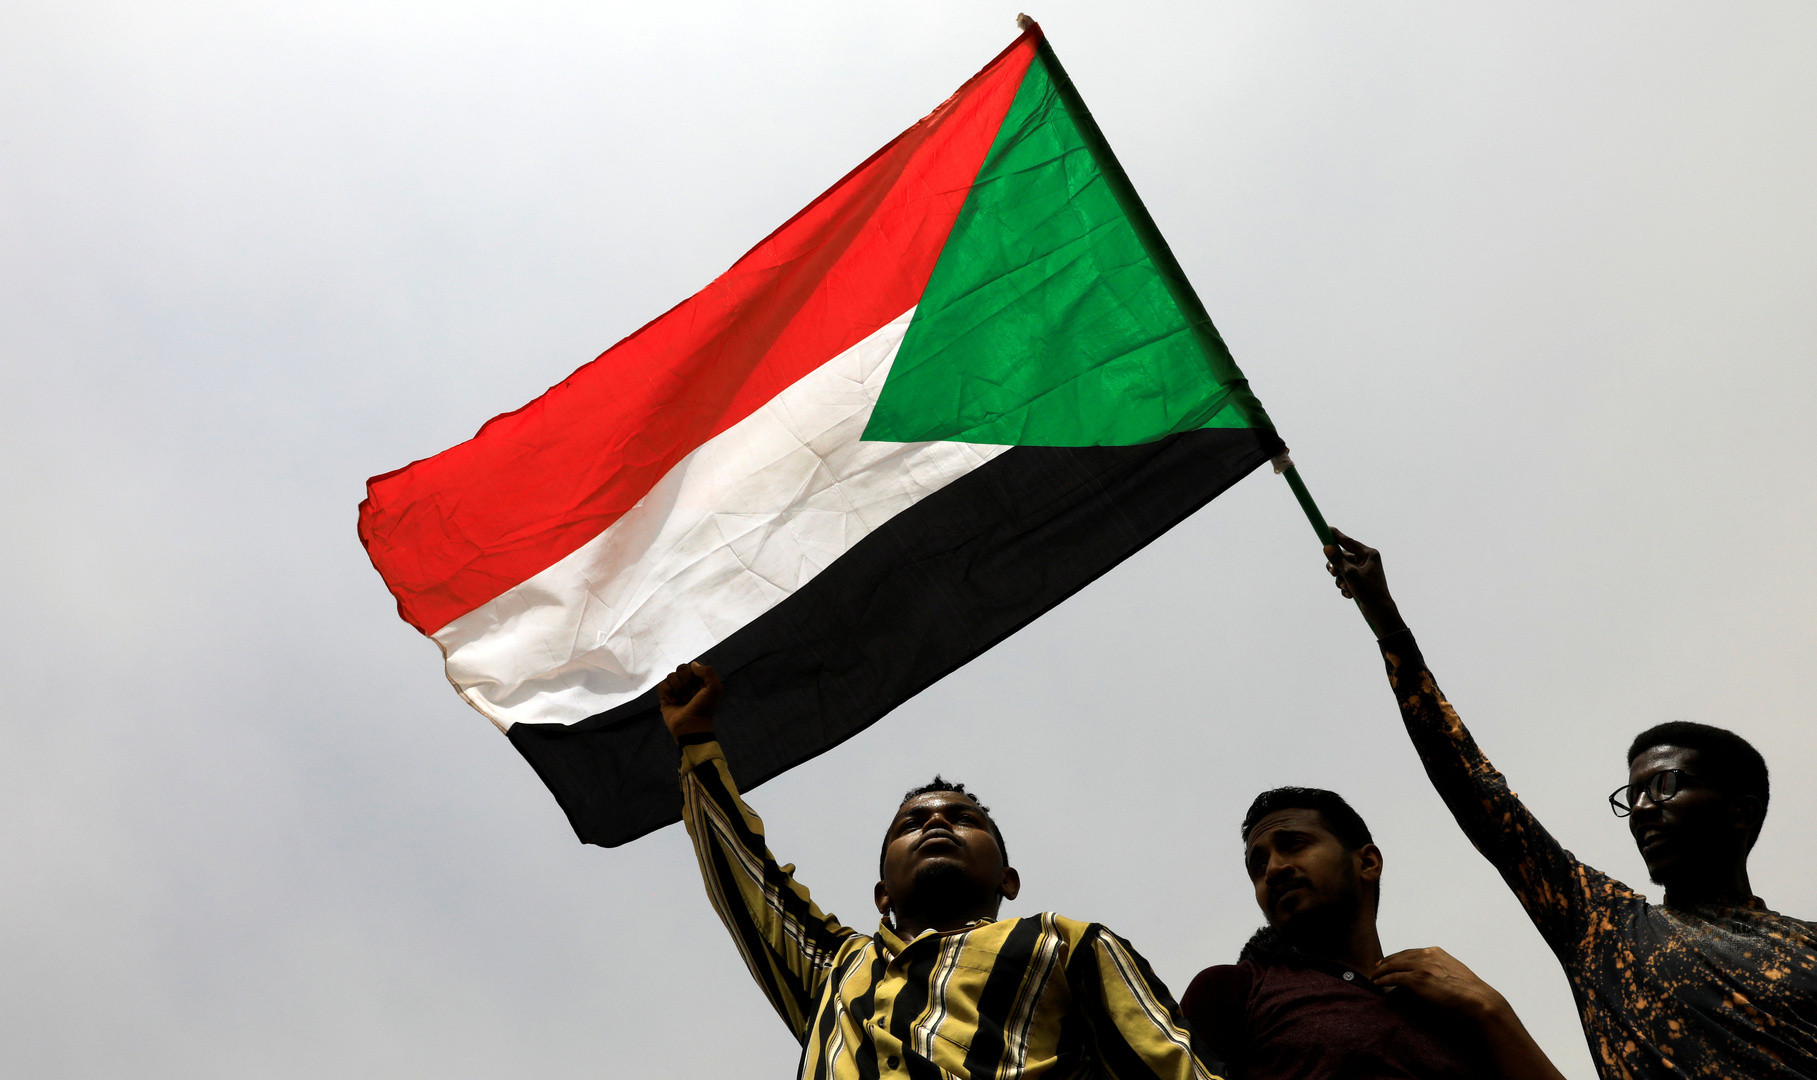 Sudan criticizes the African Union's adoption of Halayeb on the map of Egypt